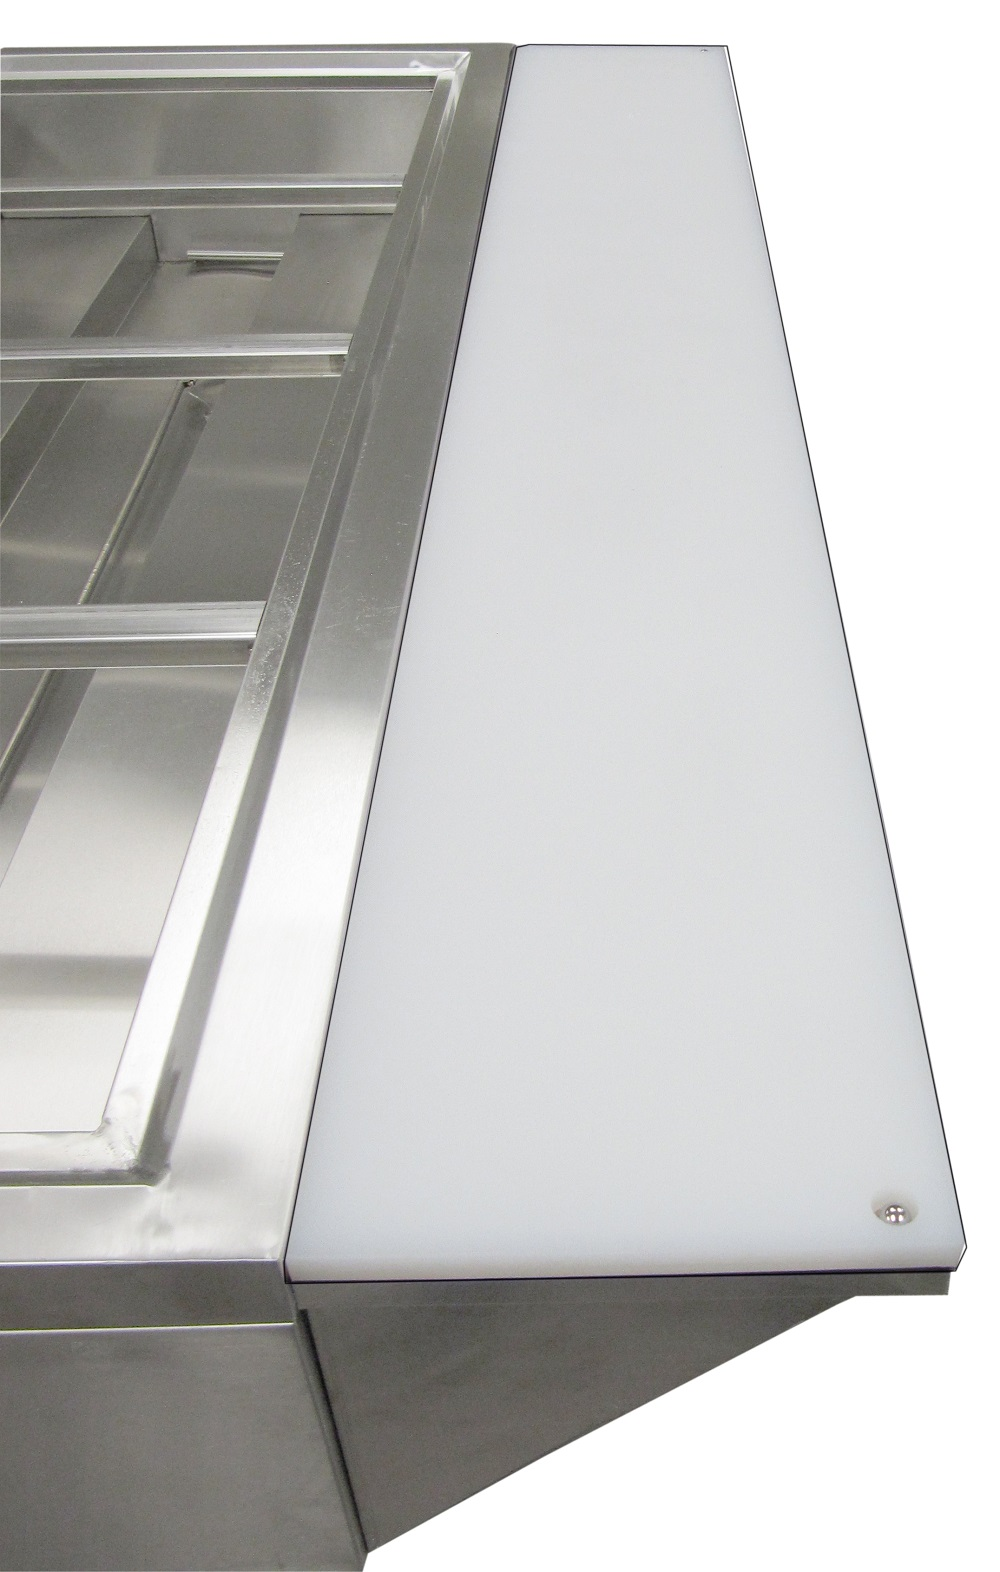 Adcraft Cutting Board & Stainless Steel Shelf for EST-240EST-240/PCB